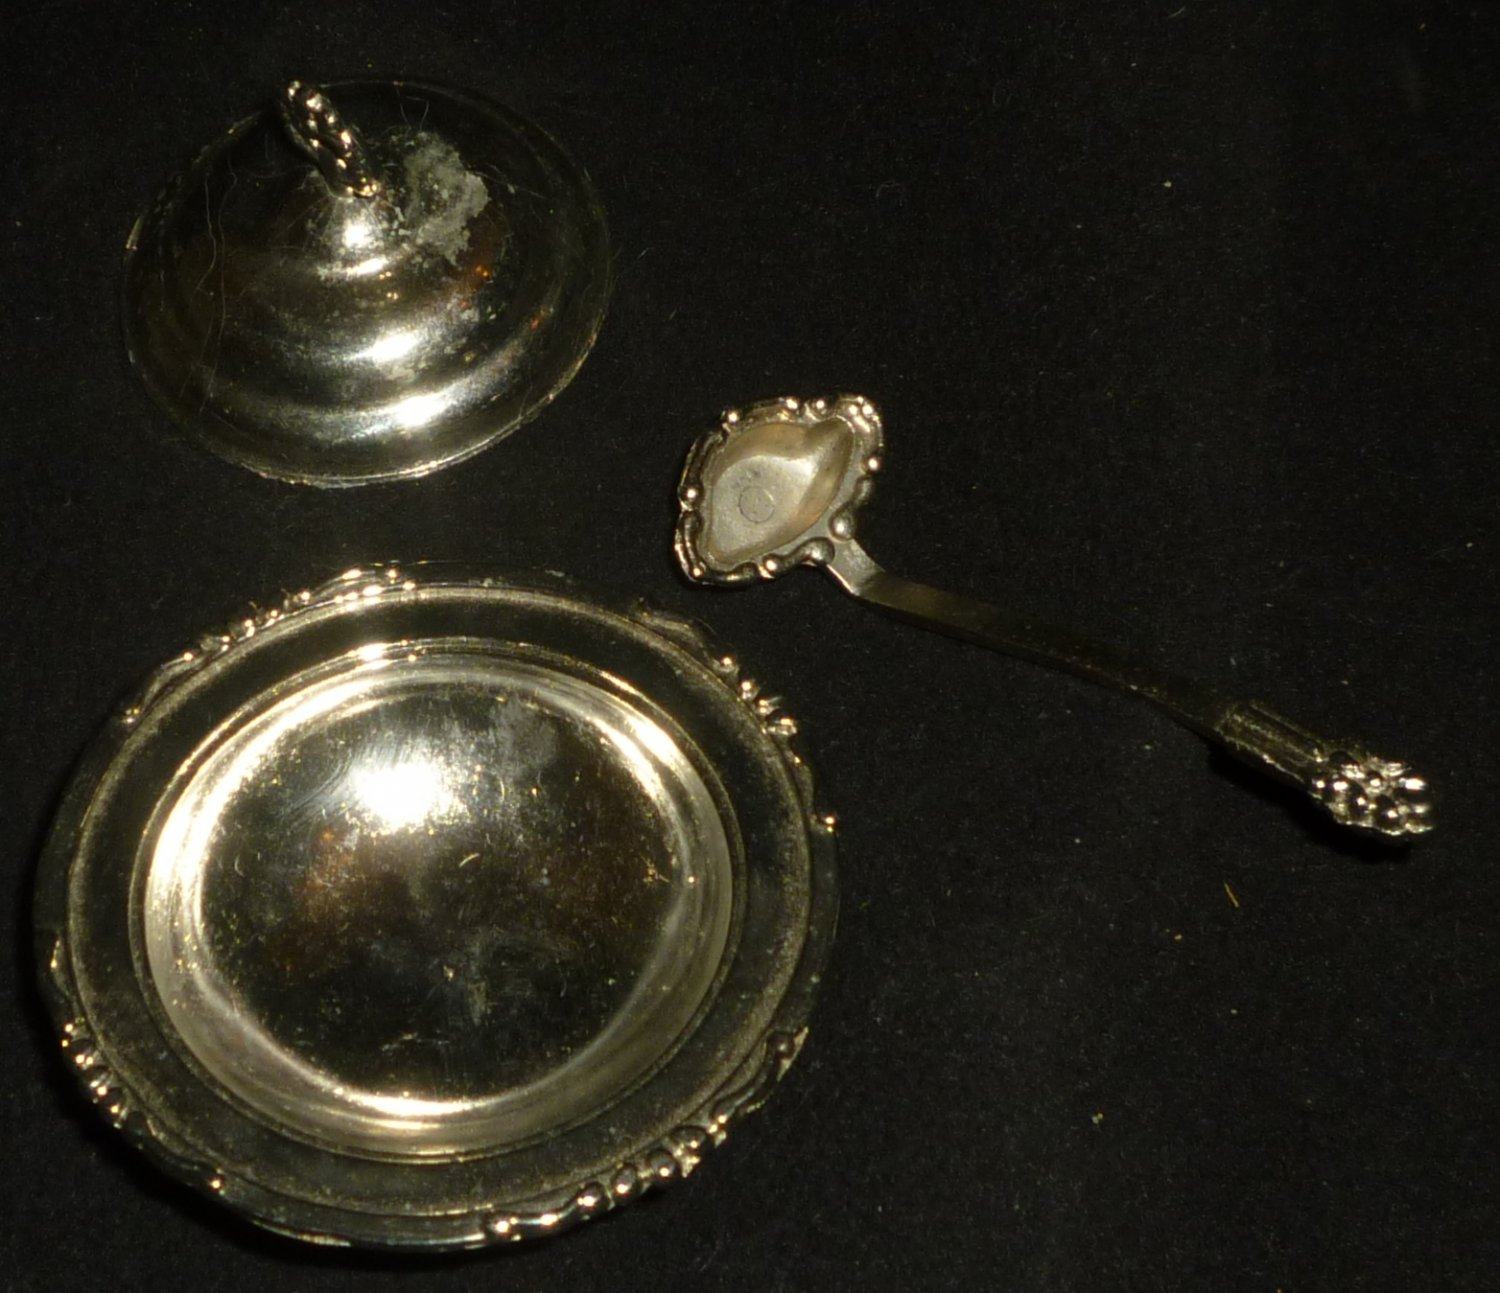 ANTIQUE SILVERPLATED CONDIMENT RELISH MINIATURE LIDDED DISH W/SPOON IMPERIAL